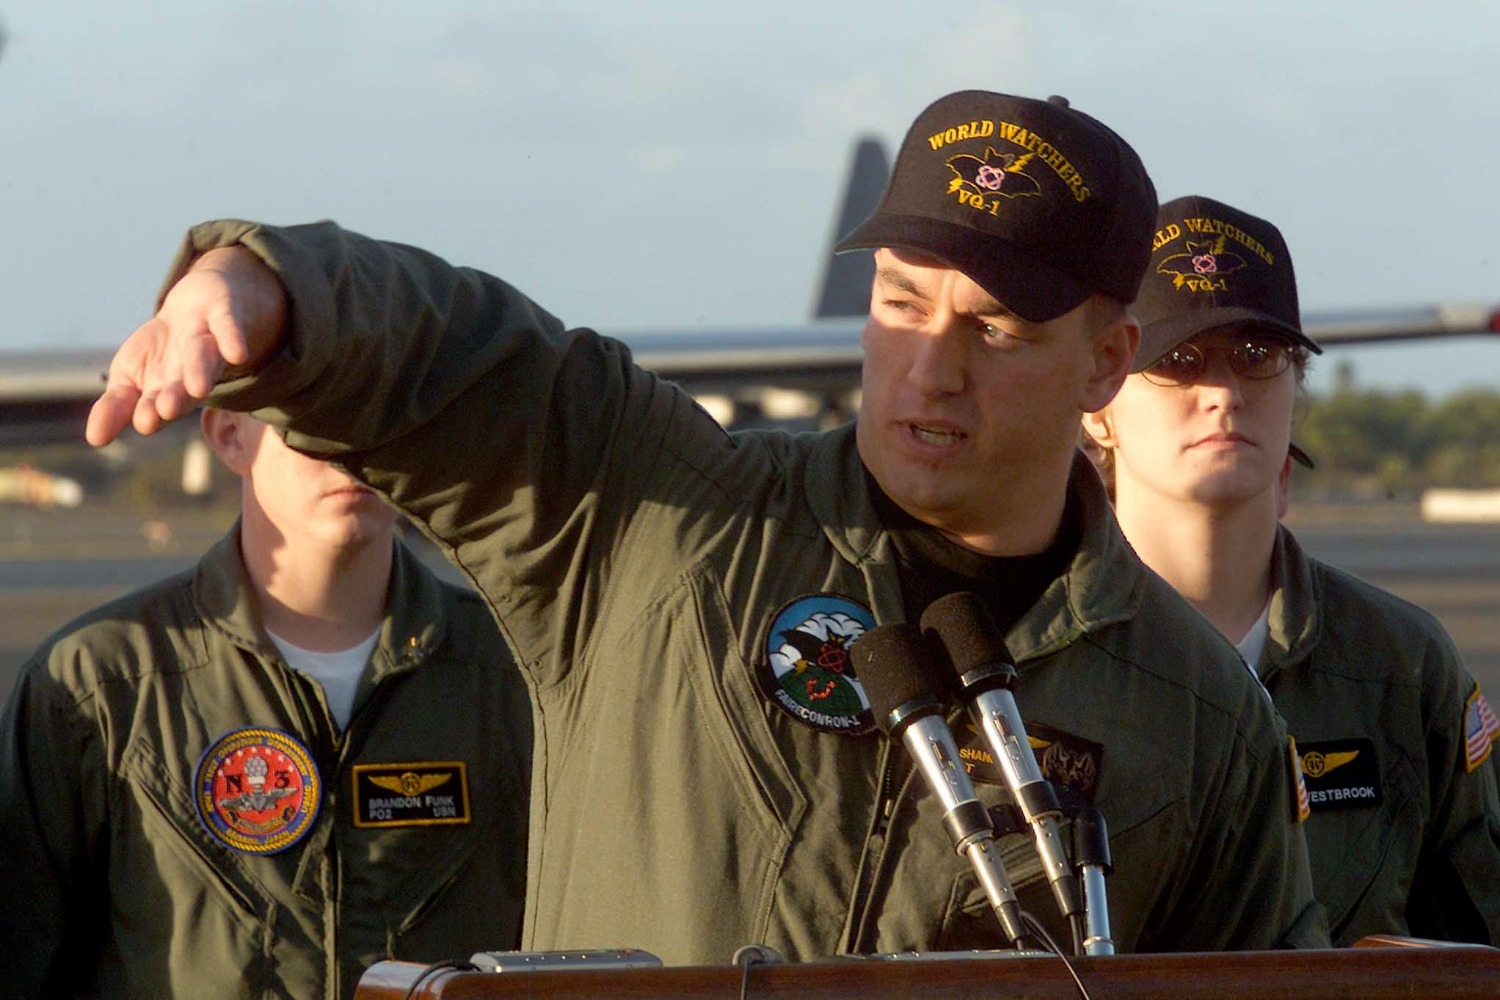 U.S. Navy Lt. Shane Osborn describes the roll of the U.S. electronic surveillance aircraft he was piloting following its encounter with a Chinese fighter plane during a media briefing at Hickam Air Force Base, Hawaii, on April 14, 2001.